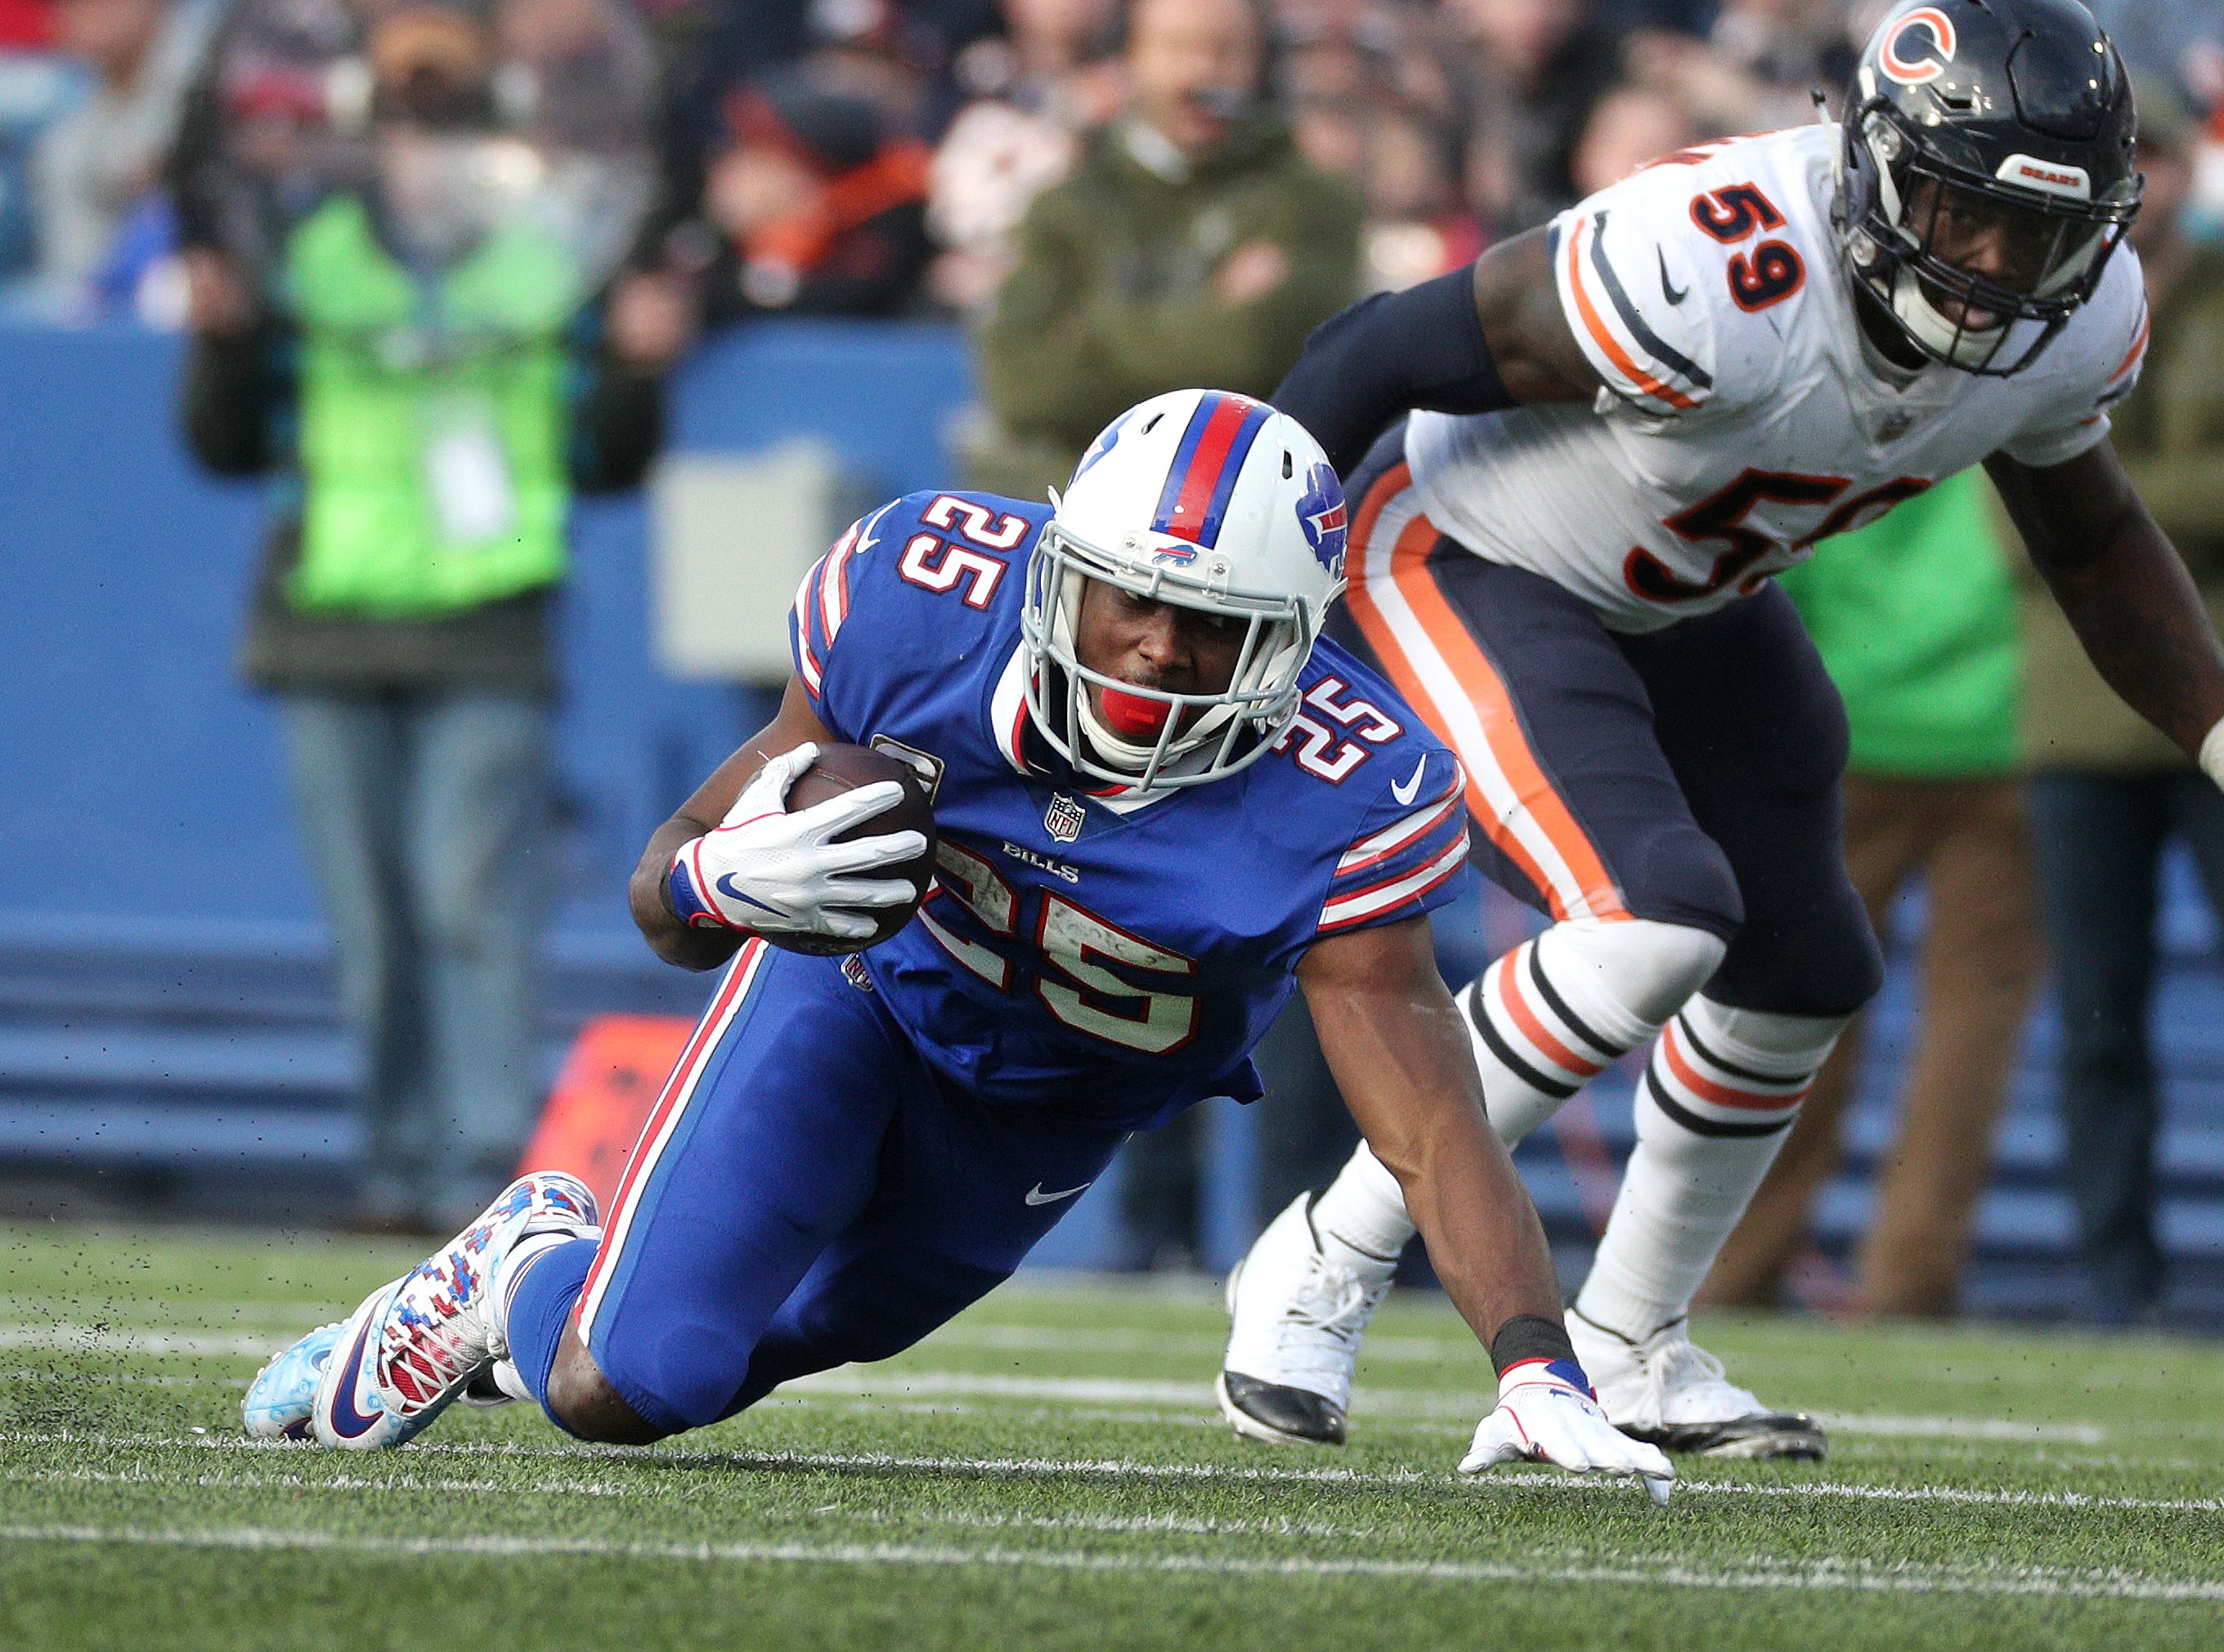 Bills running back was held to 10 yards on 10 carries against the Bears.